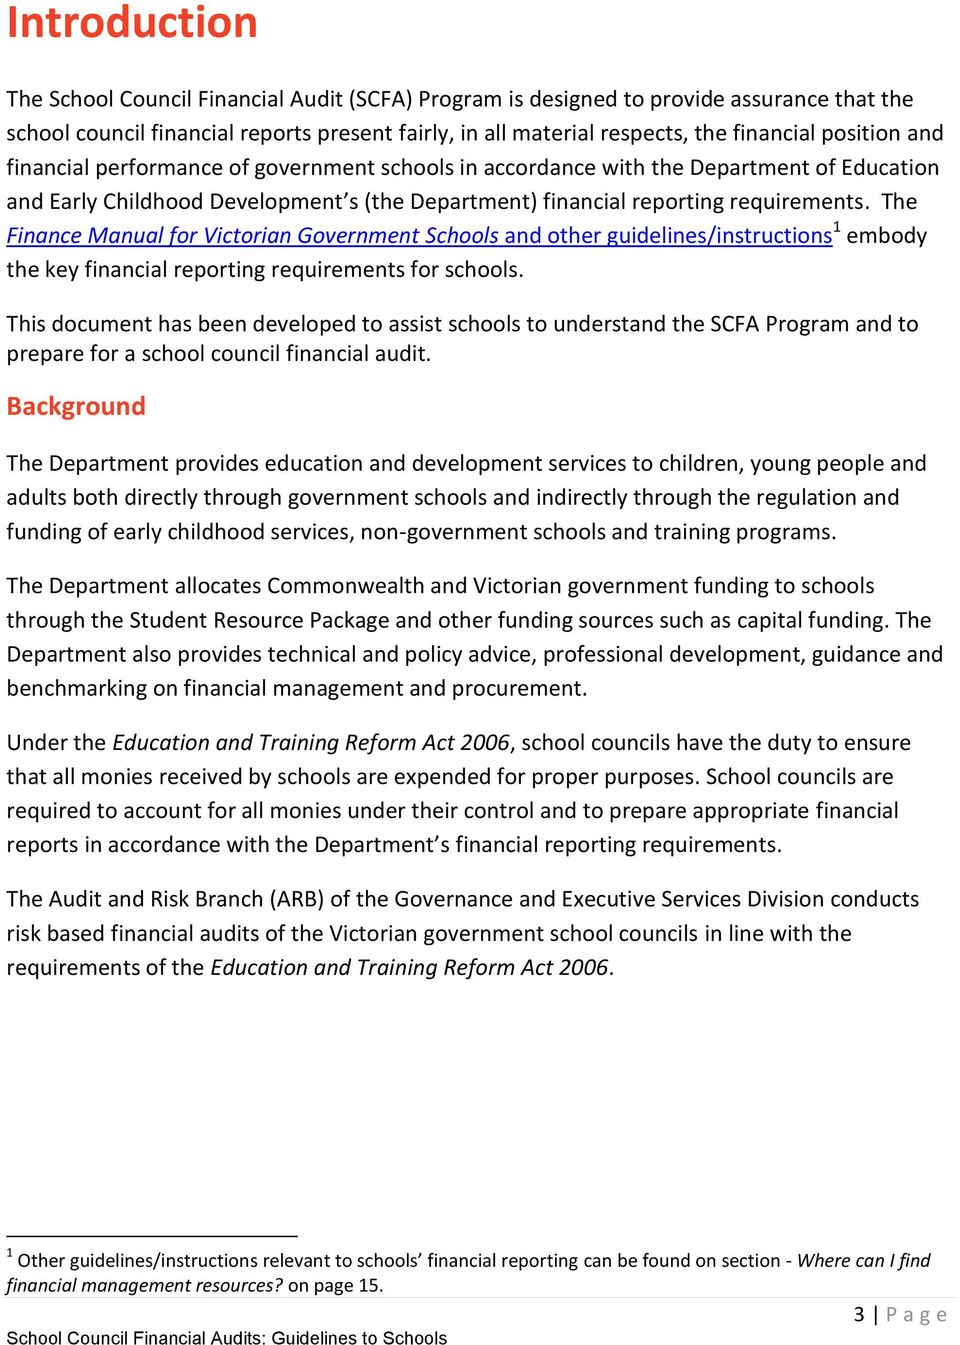 The Finance Manual for Victorian Government Schools and other guidelines/instructions 1 embody the key financial reporting requirements for schools.